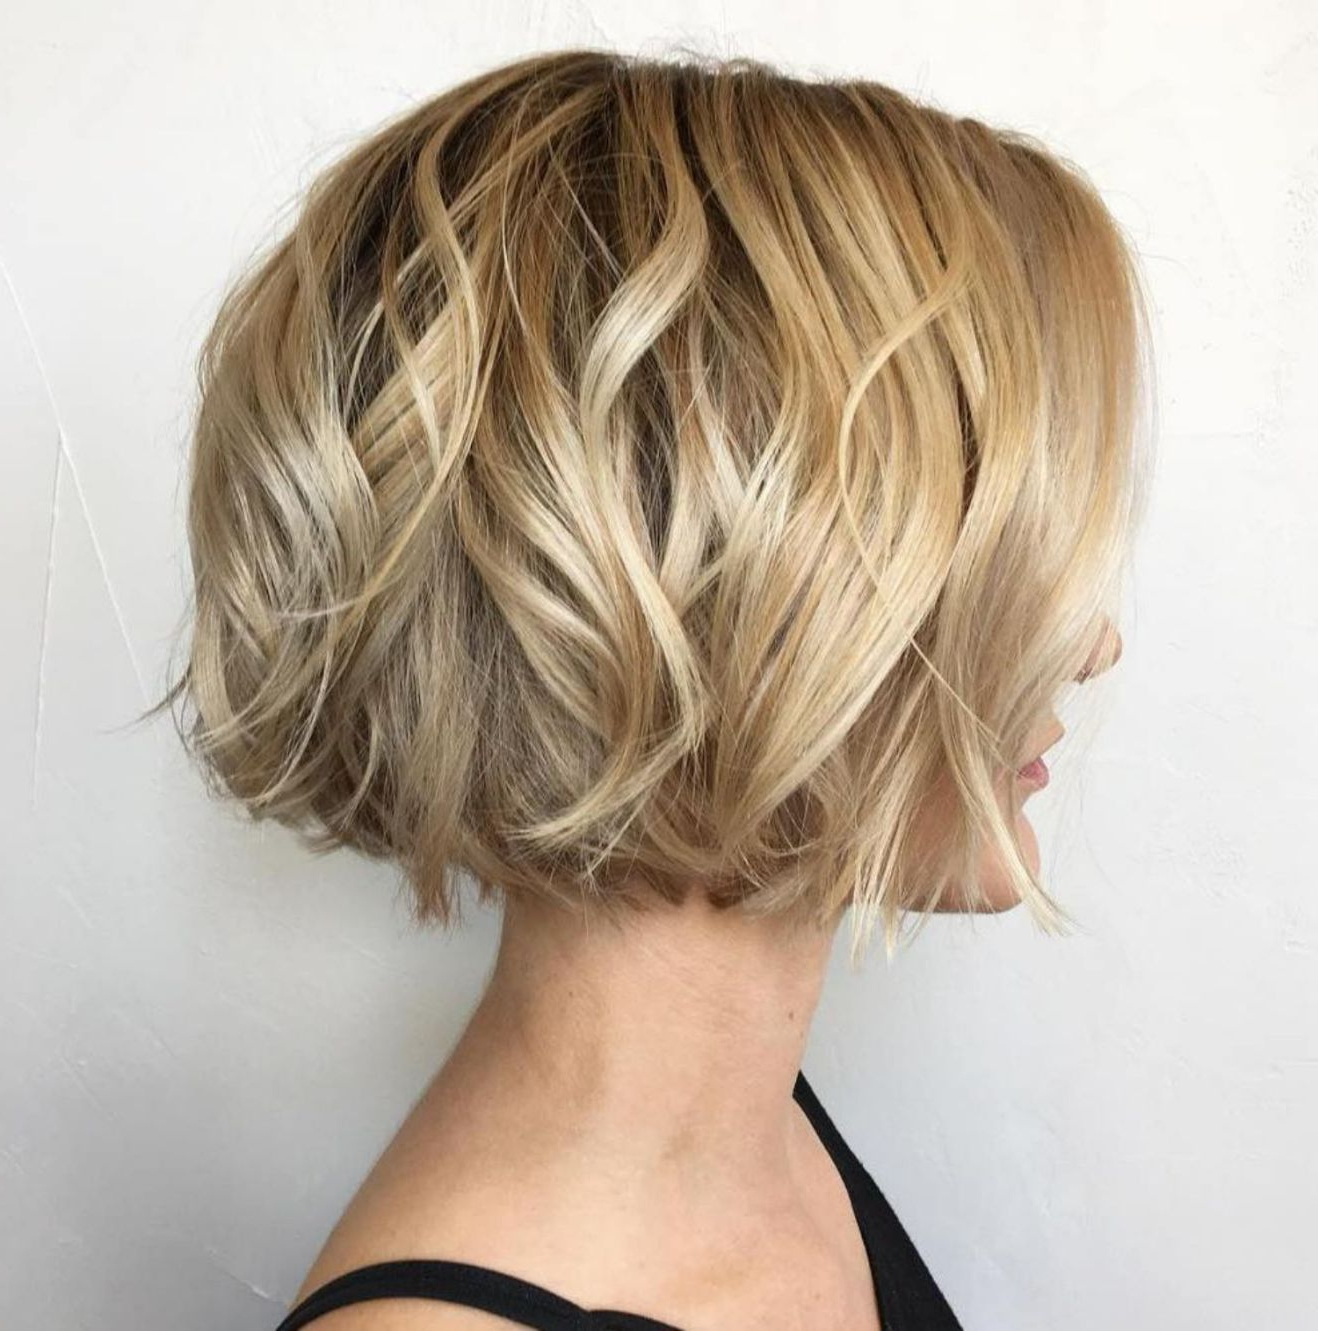 Favorite Jaw Length Short Bob Hairstyles For Fine Hair For 100 Mind Blowing Short Hairstyles For Fine Hair (View 3 of 20)